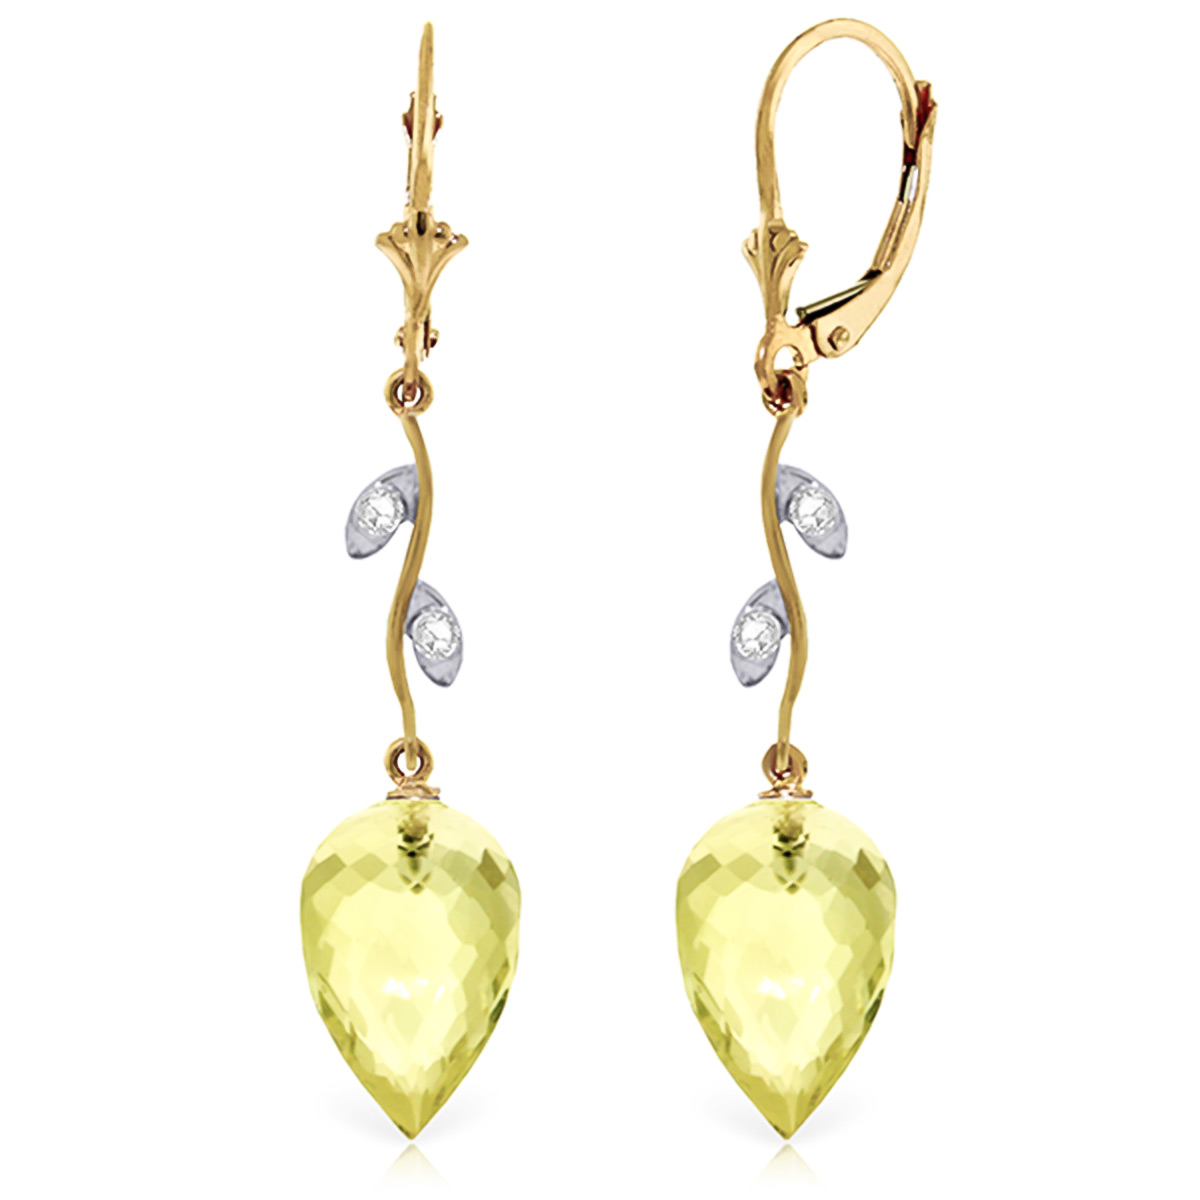 Lemon Quartz Drop Earrings 18.02 ctw in 9ct Gold